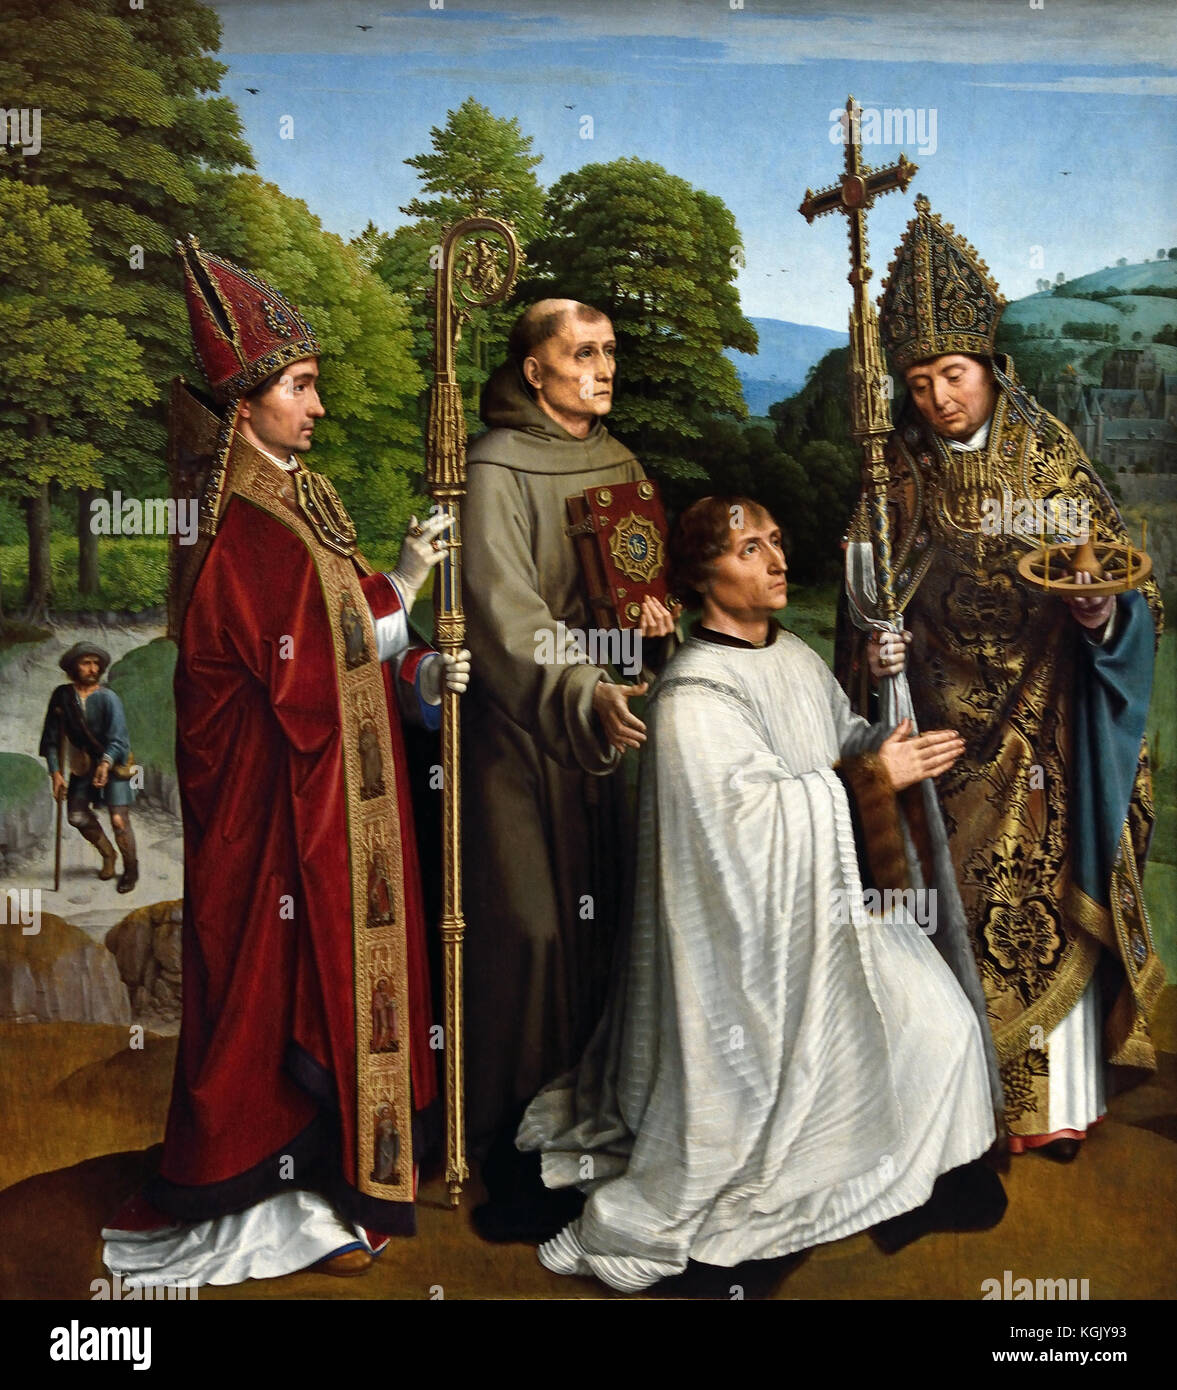 How did the holiday of the three saints